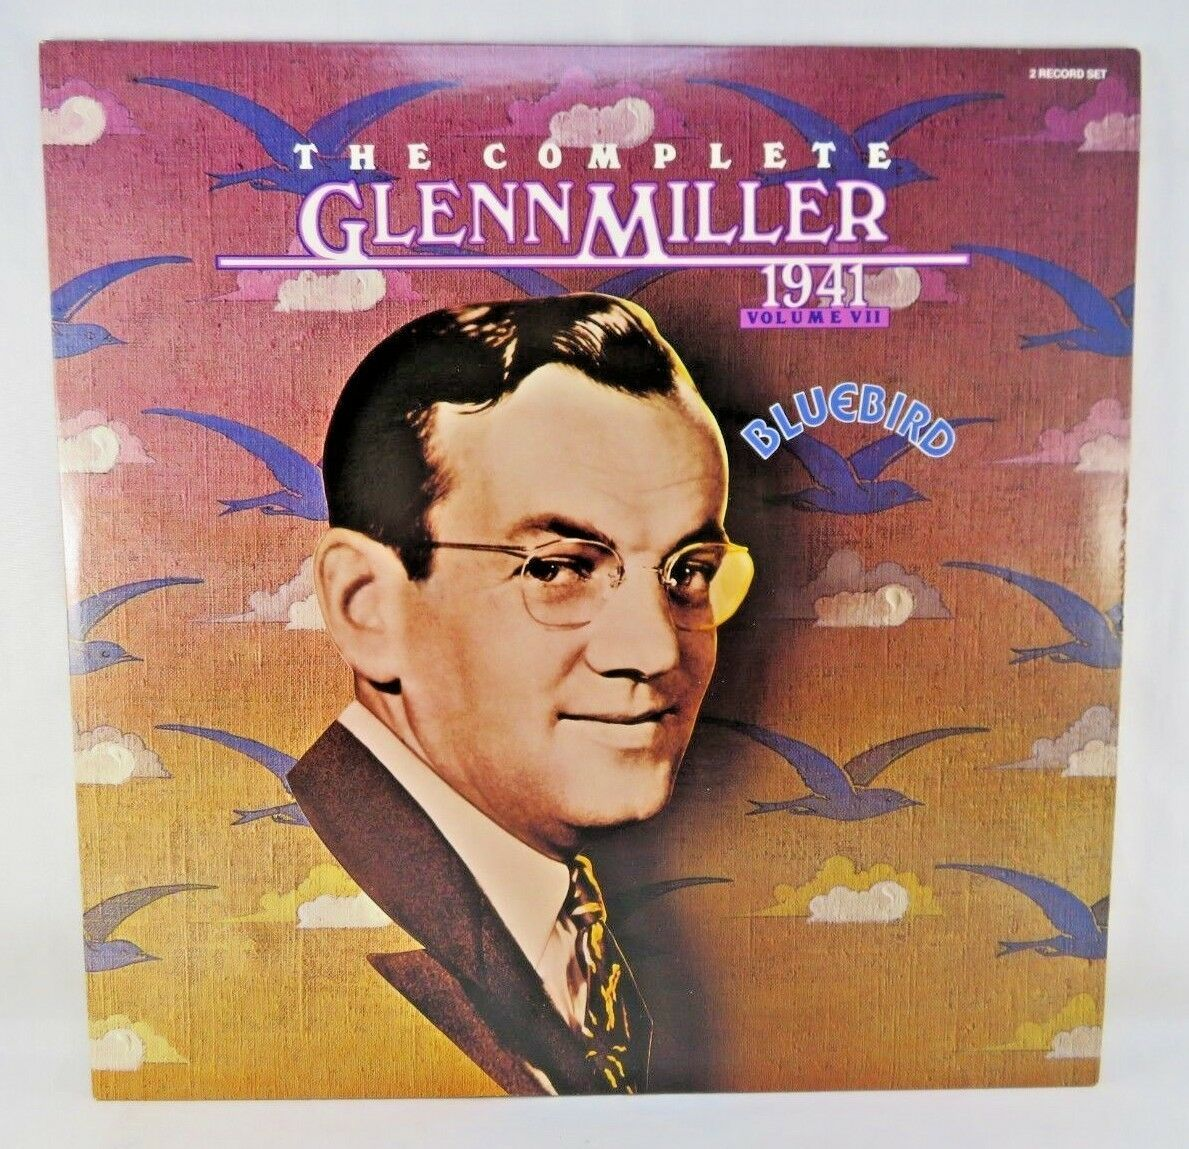 "Primary image for The Complete Glenn Miller 1941 Vol. VII (7) 12"" Double Vinyl LP by Bluebird RCA"